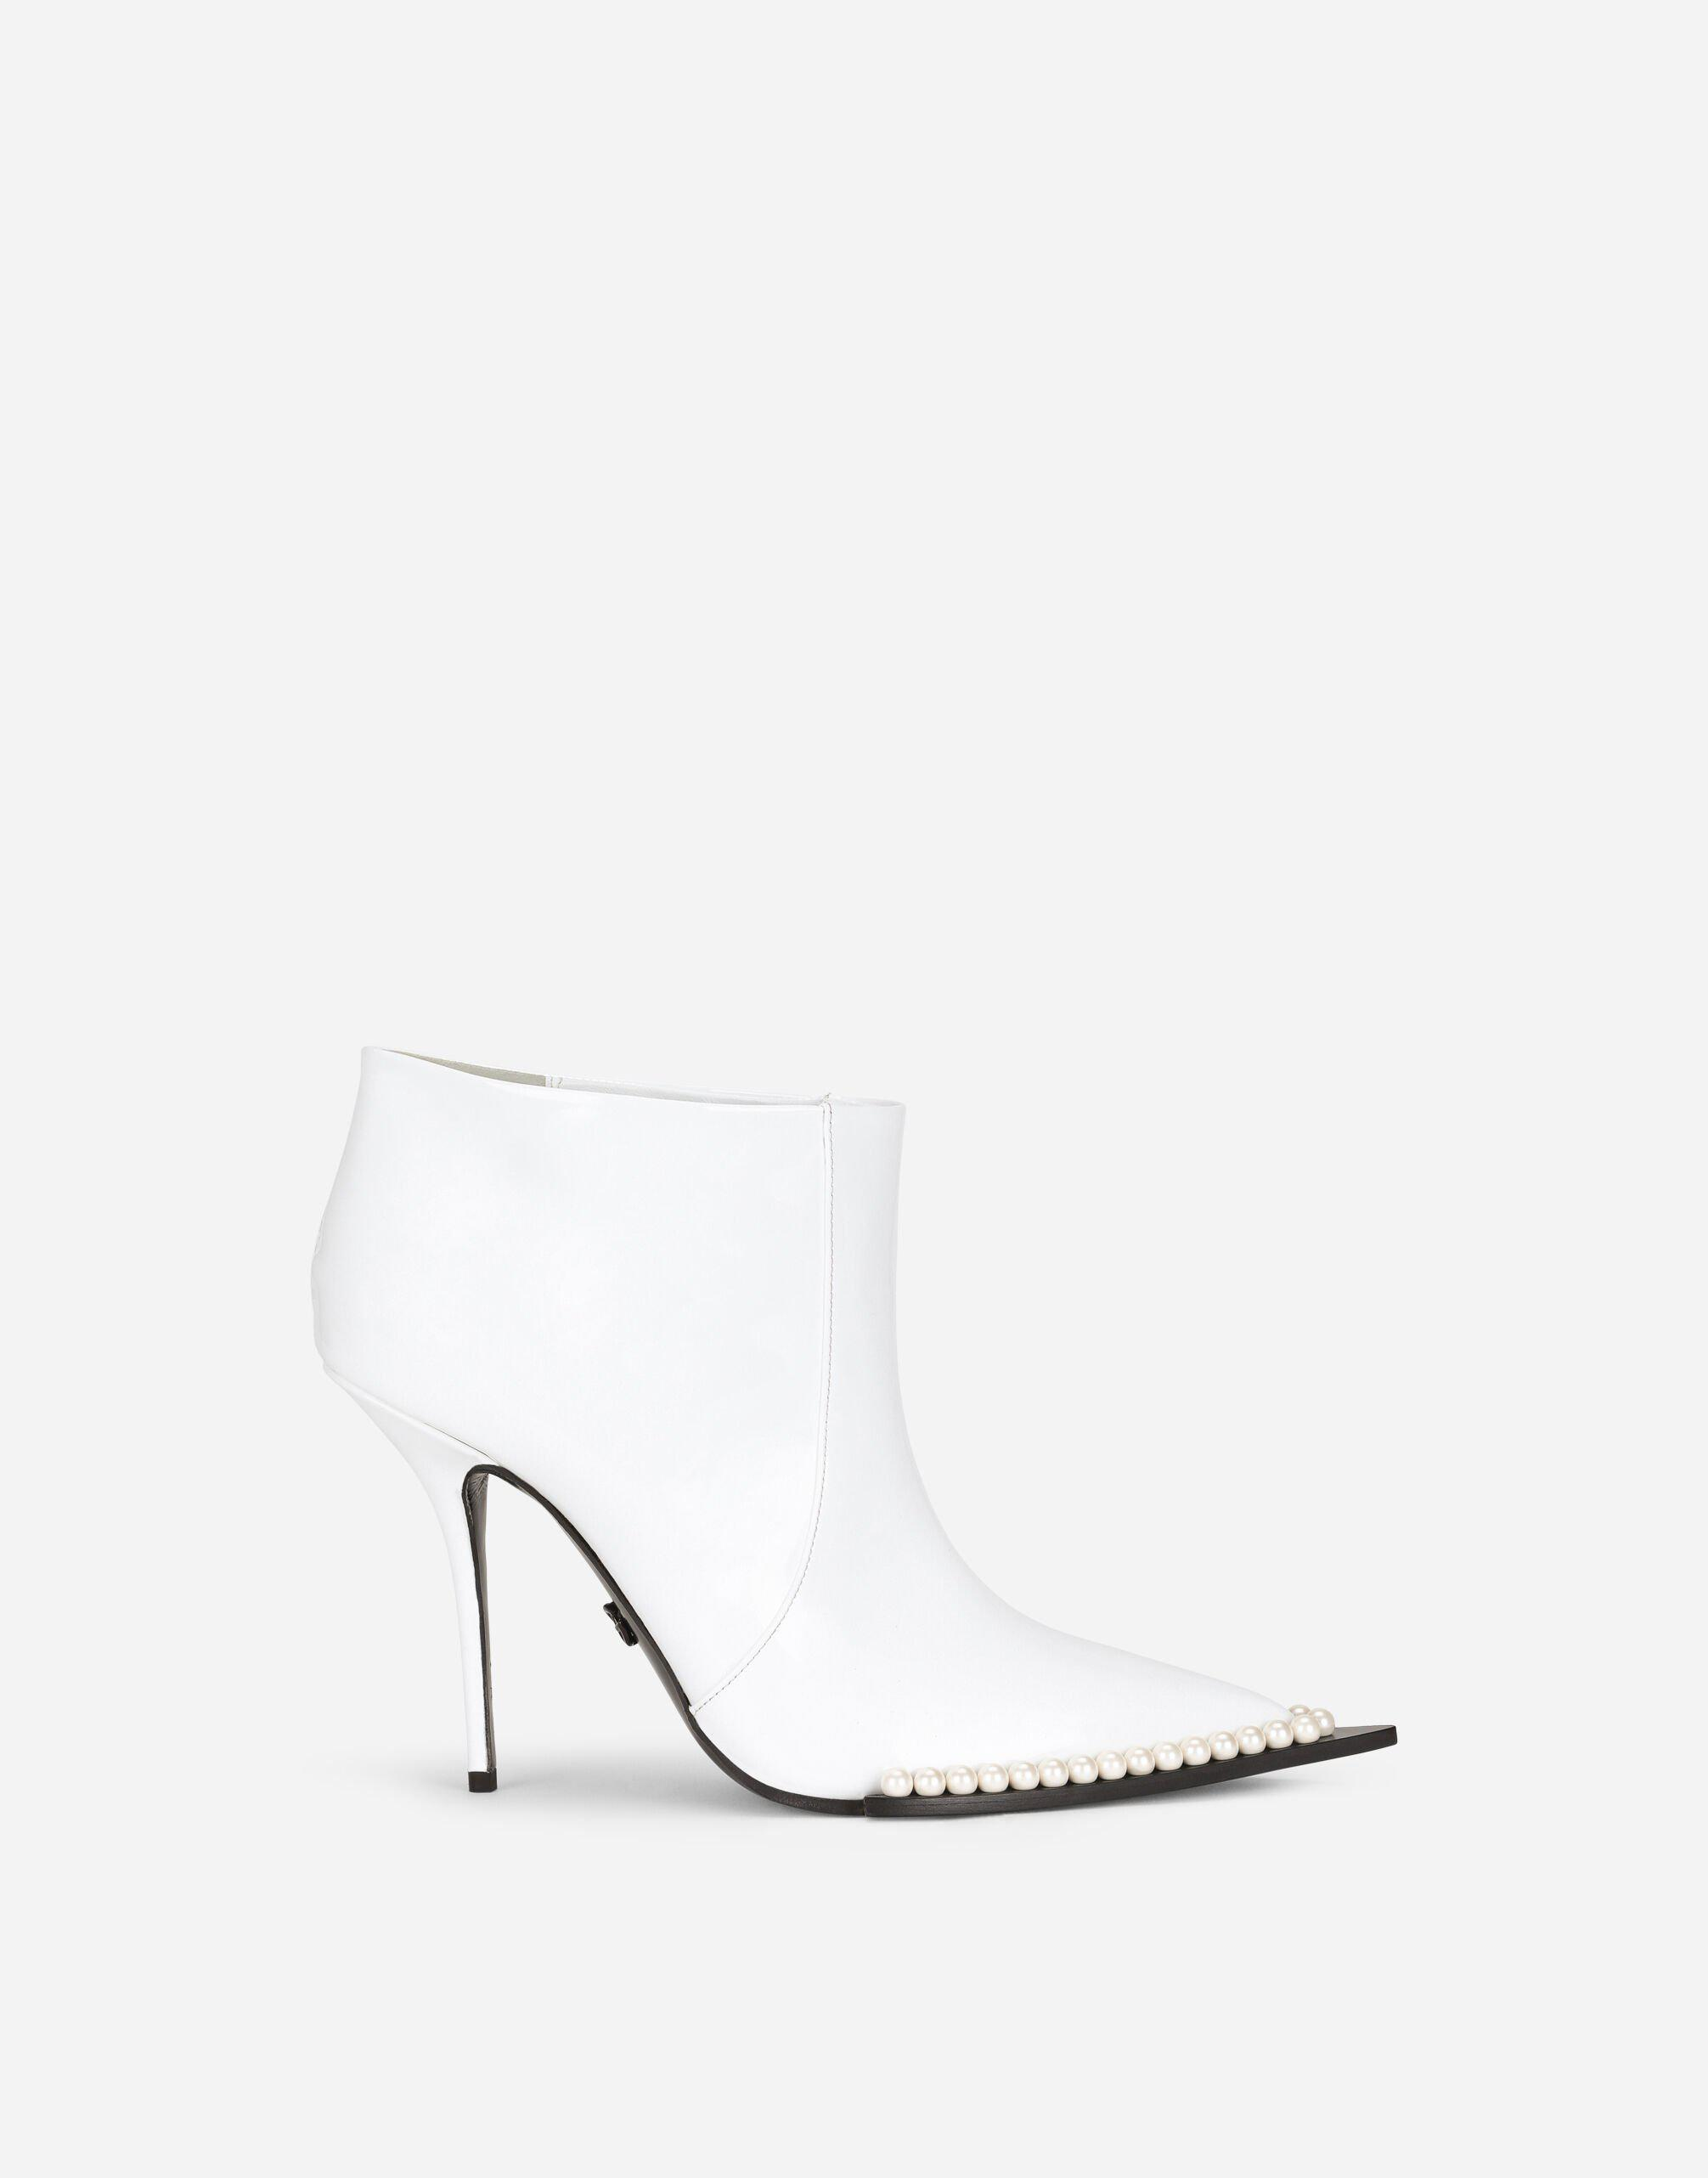 Patent leather ankle boots with pearls